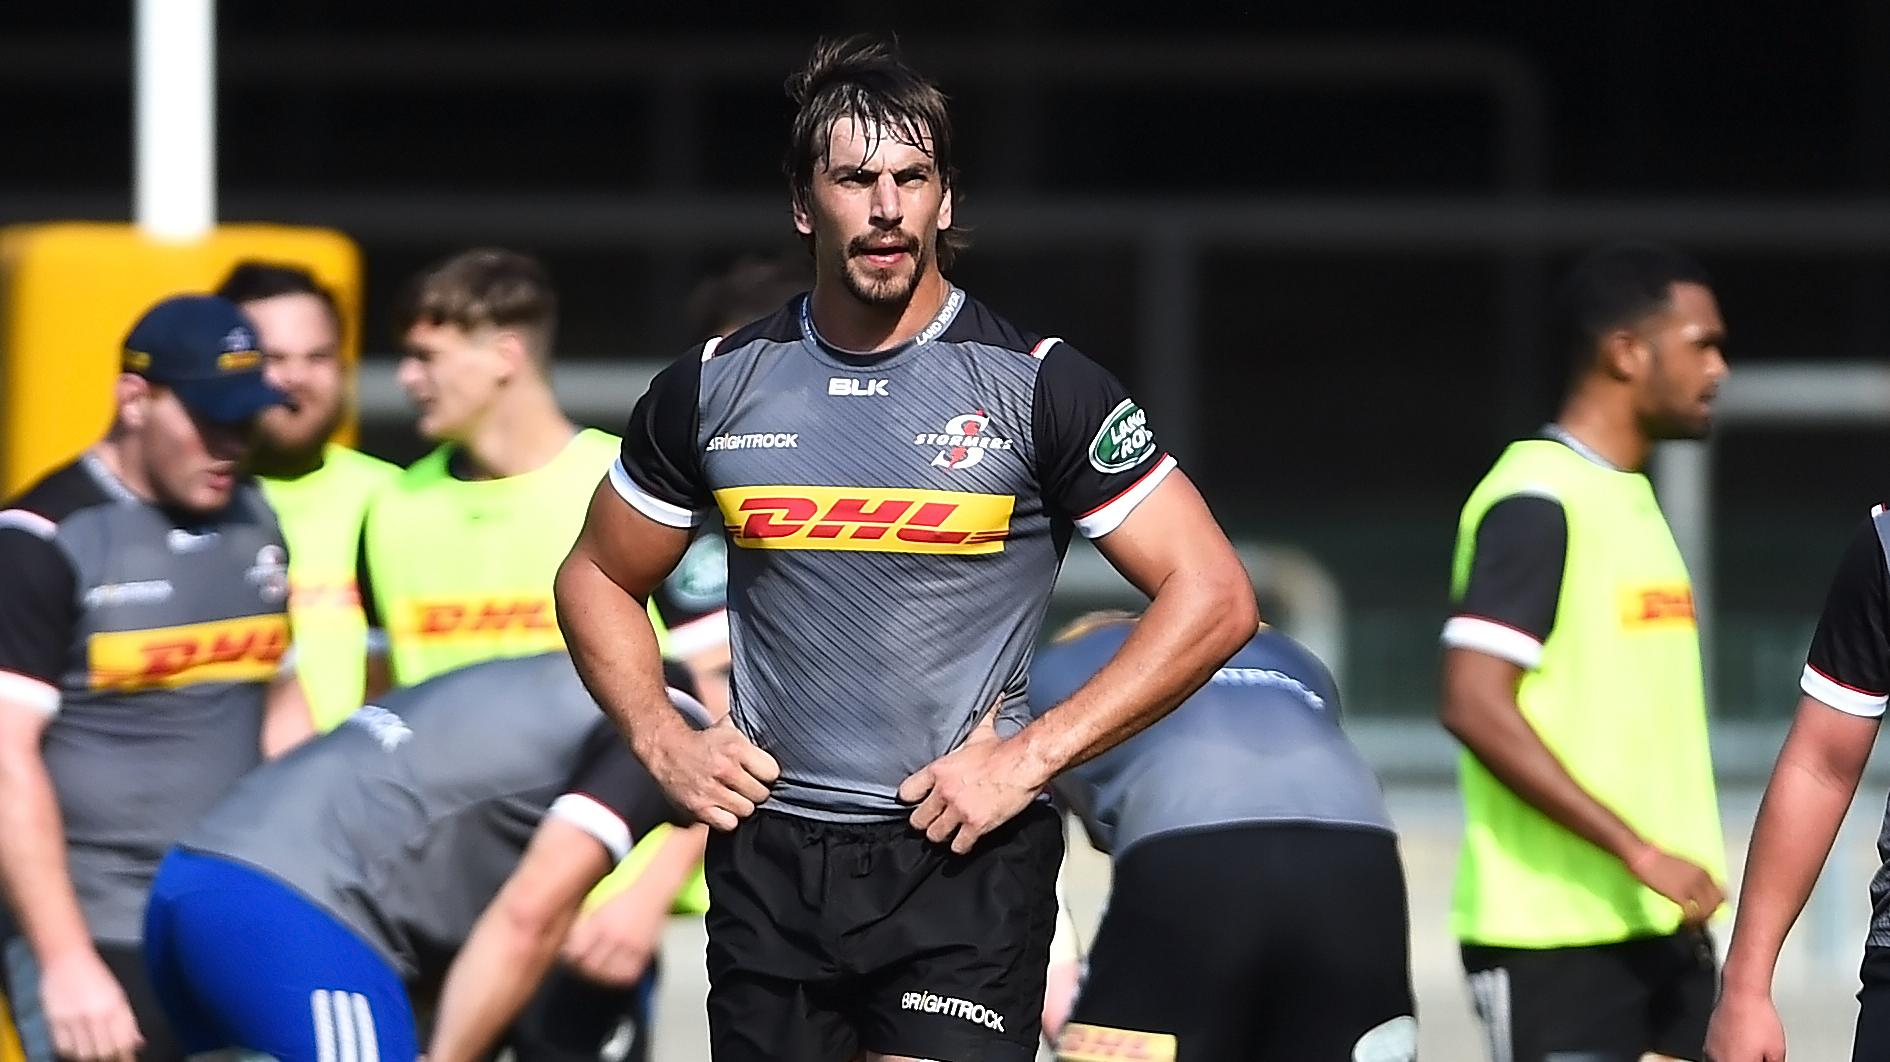 bedb8f620dd Yet another high profile Stormers player has been struck down by injury  this week. This week it's Springbok and Stormers hard man Eben Etzebeth.